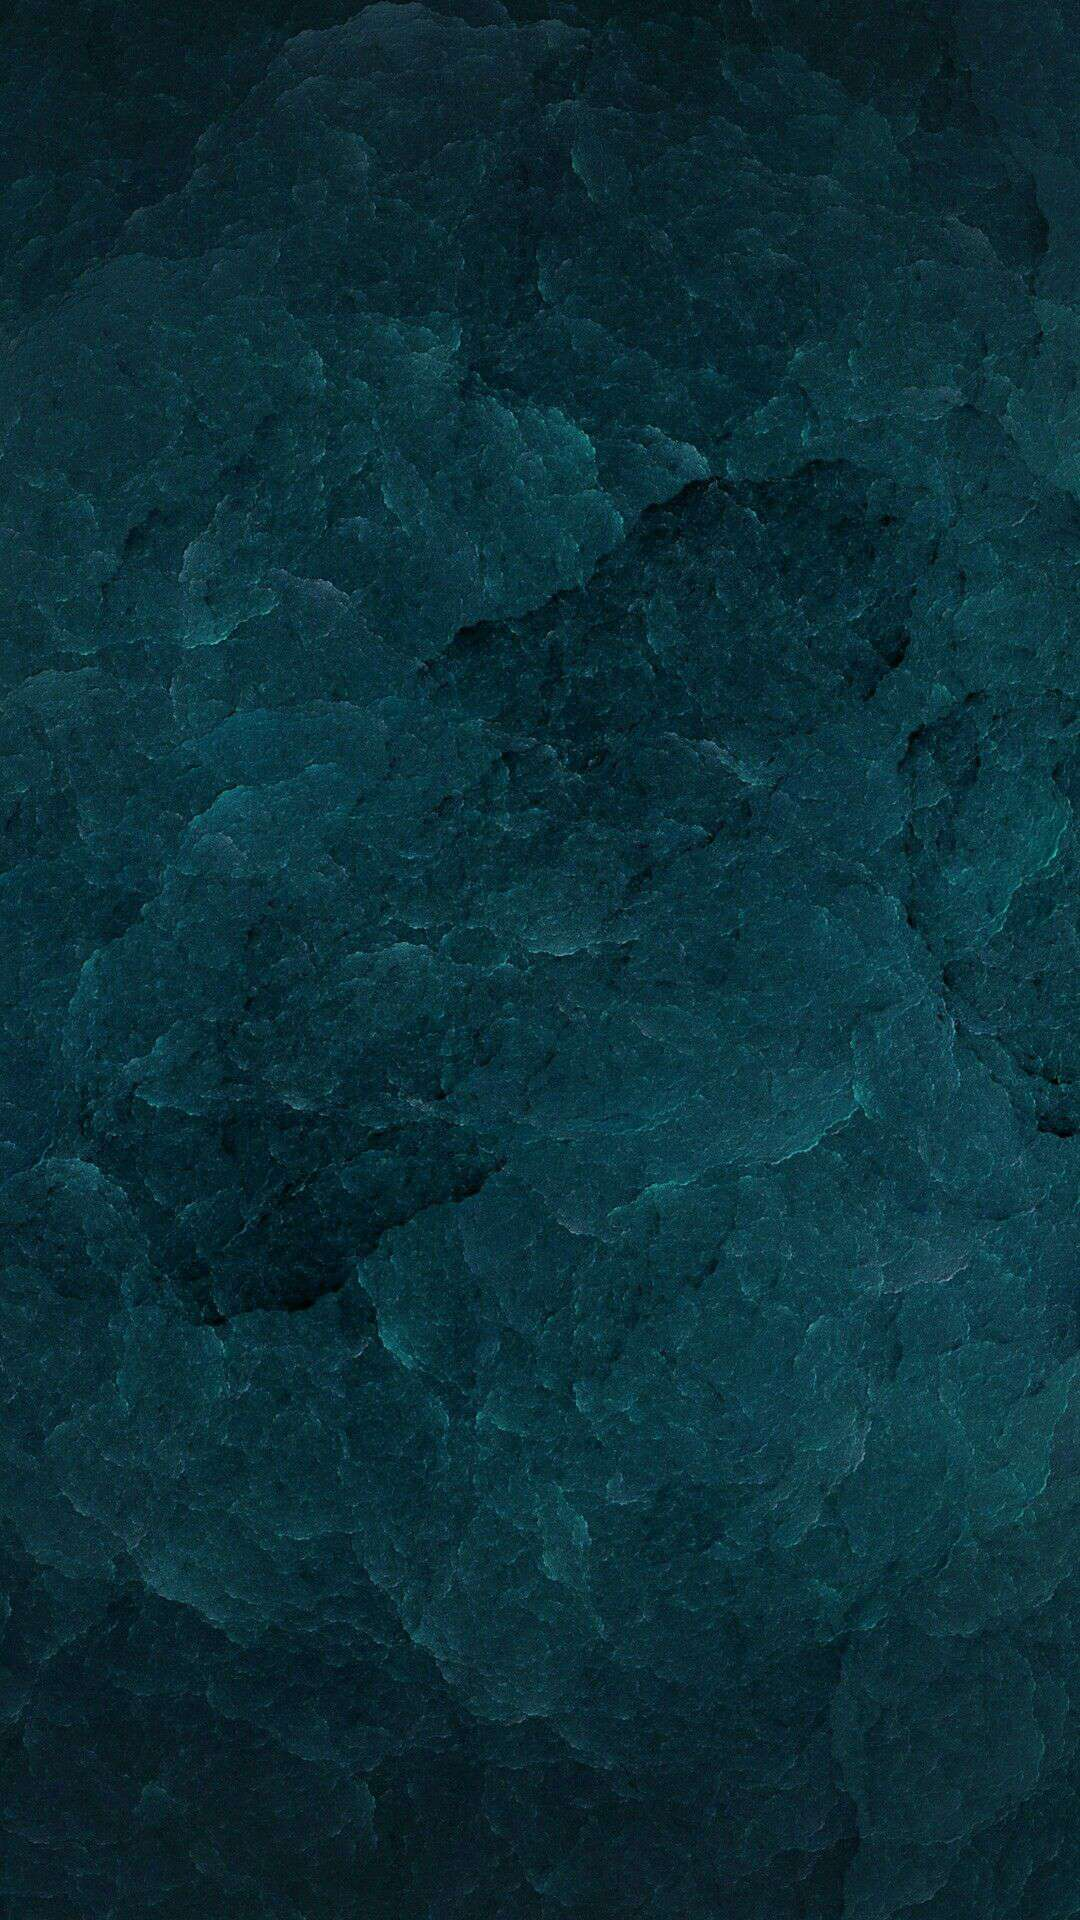 Dark Rock iPhone Wallpaper